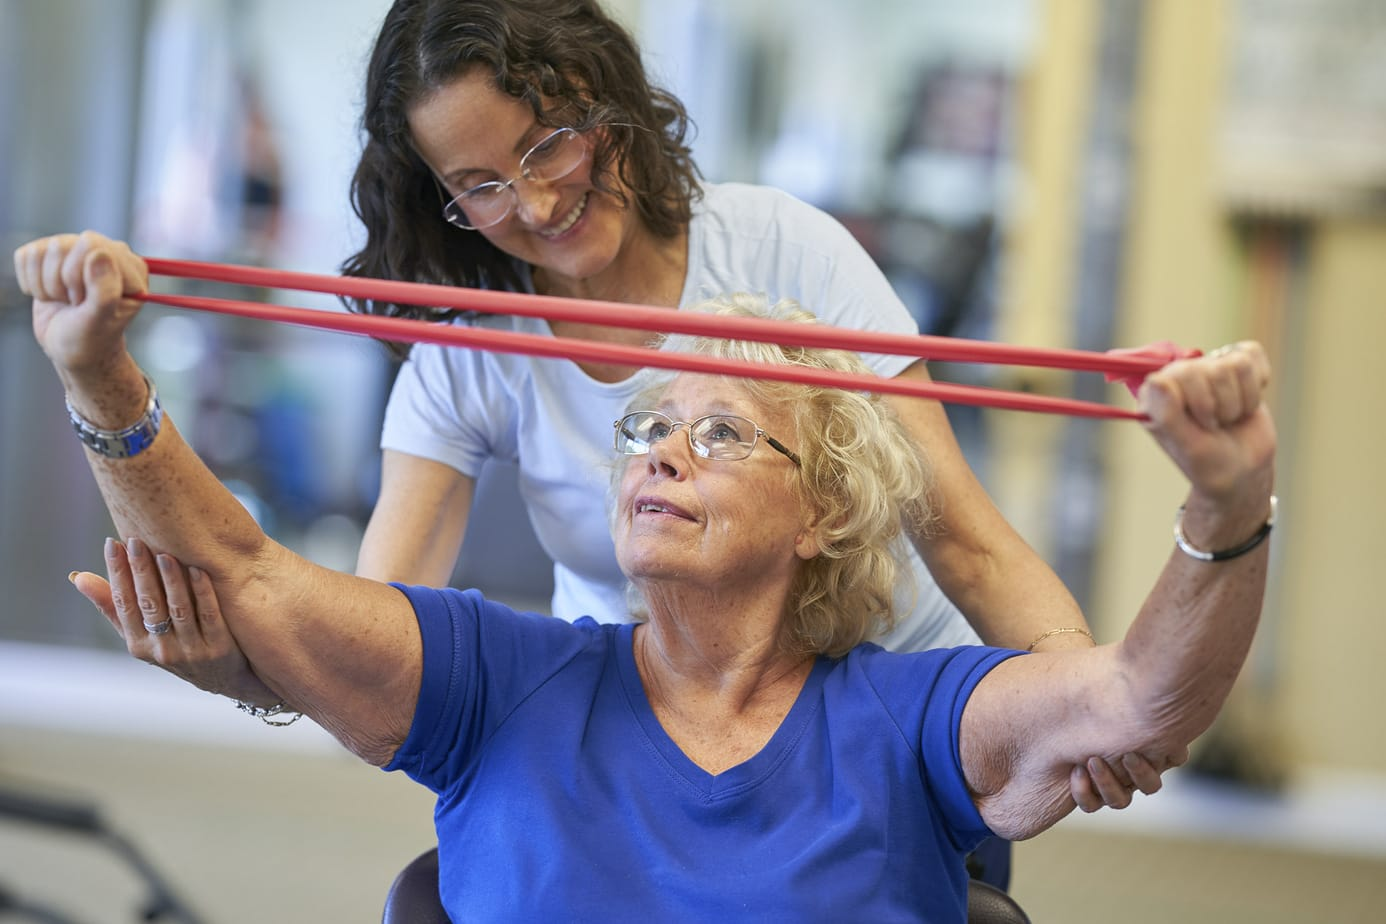 Senior Living Retirement community photography, resident doing physical therapy exercise